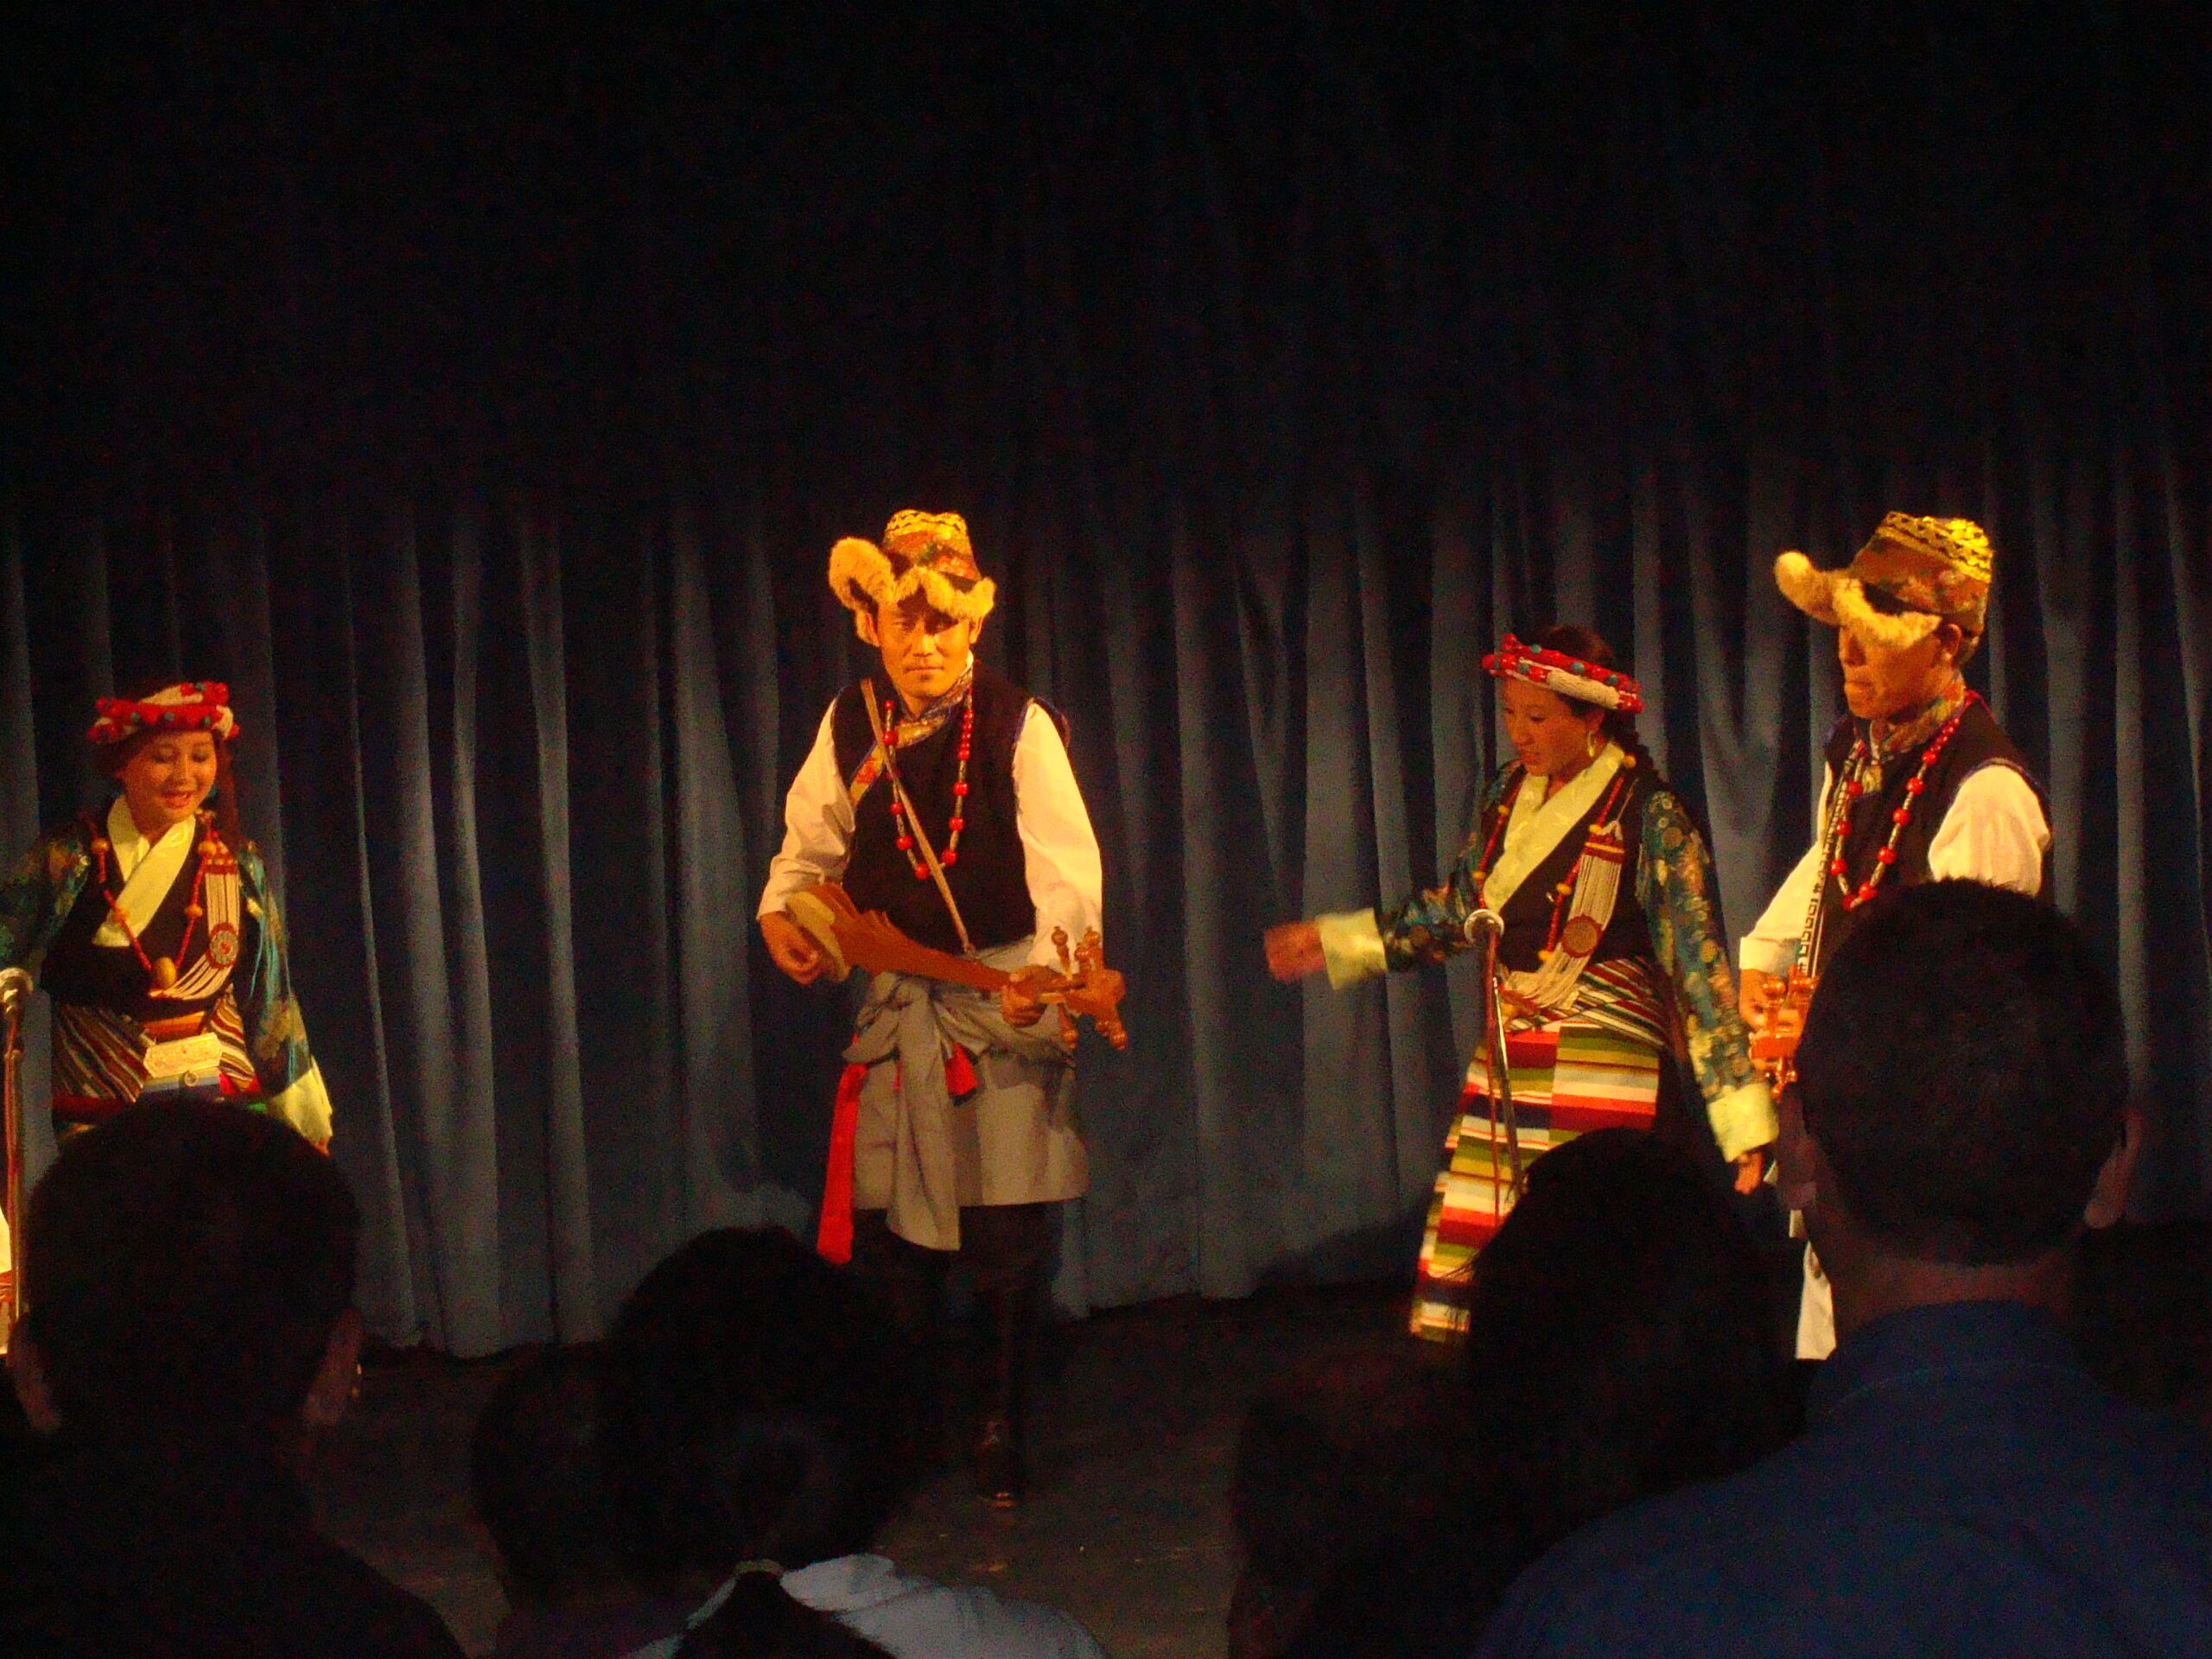 Nyima Gyaltsen taking part in Cultural Program in Italy as part of educational tour in 2009.